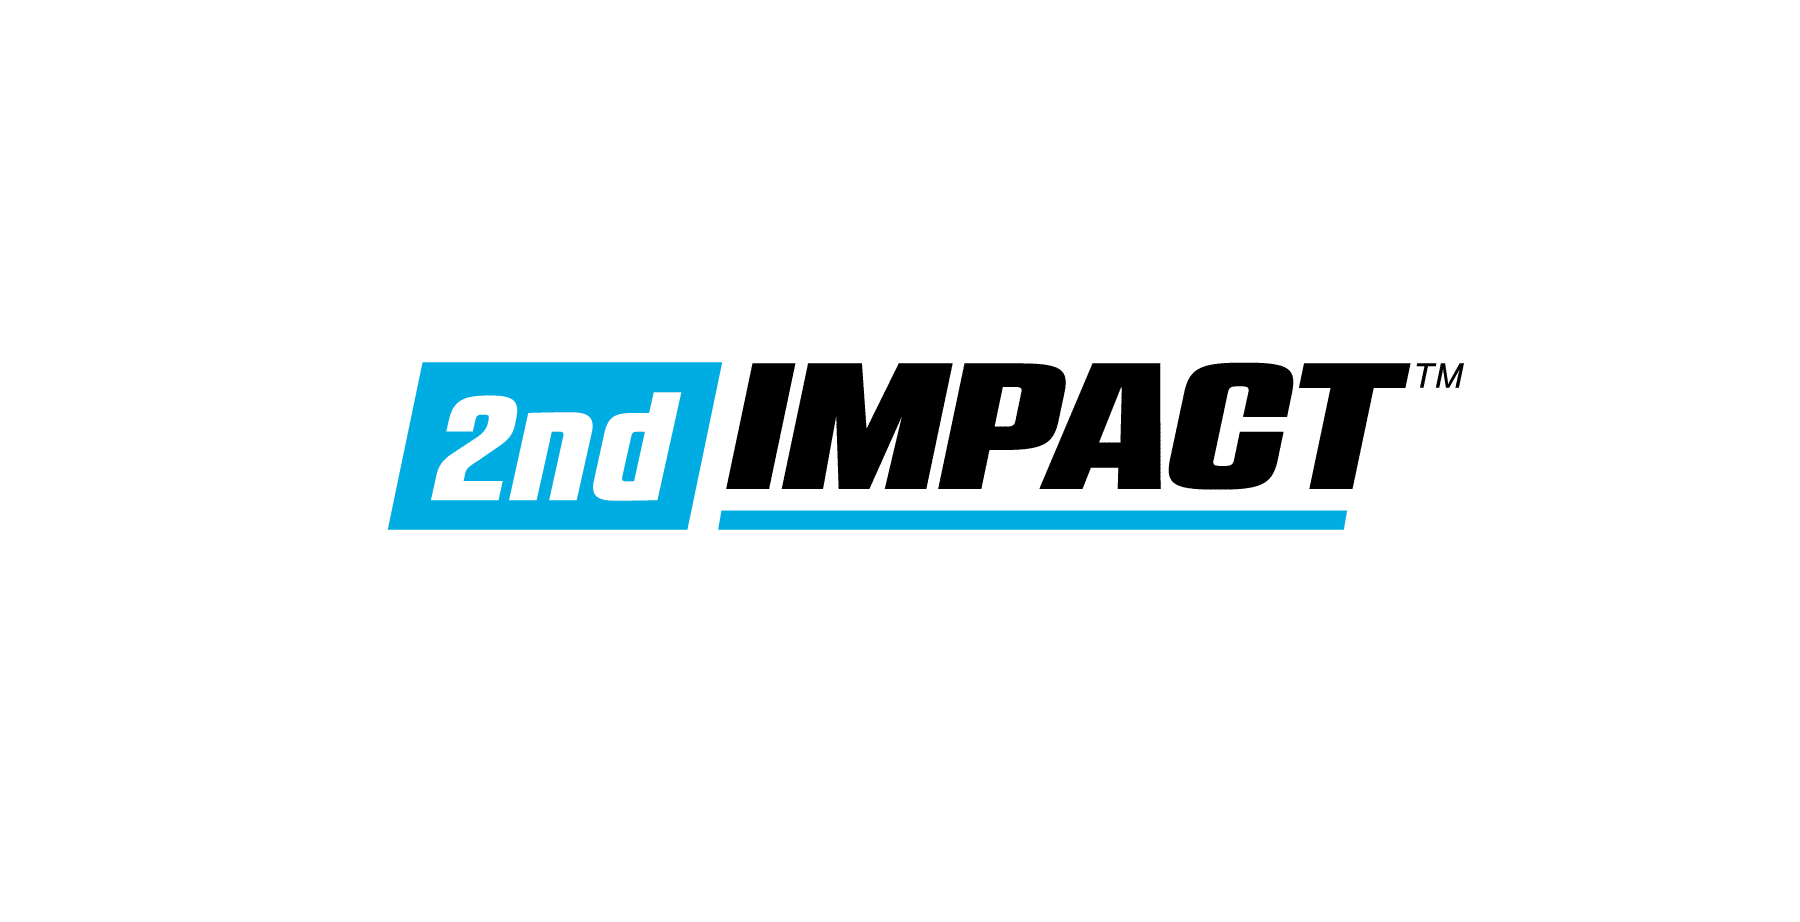 2nd Impact logo design